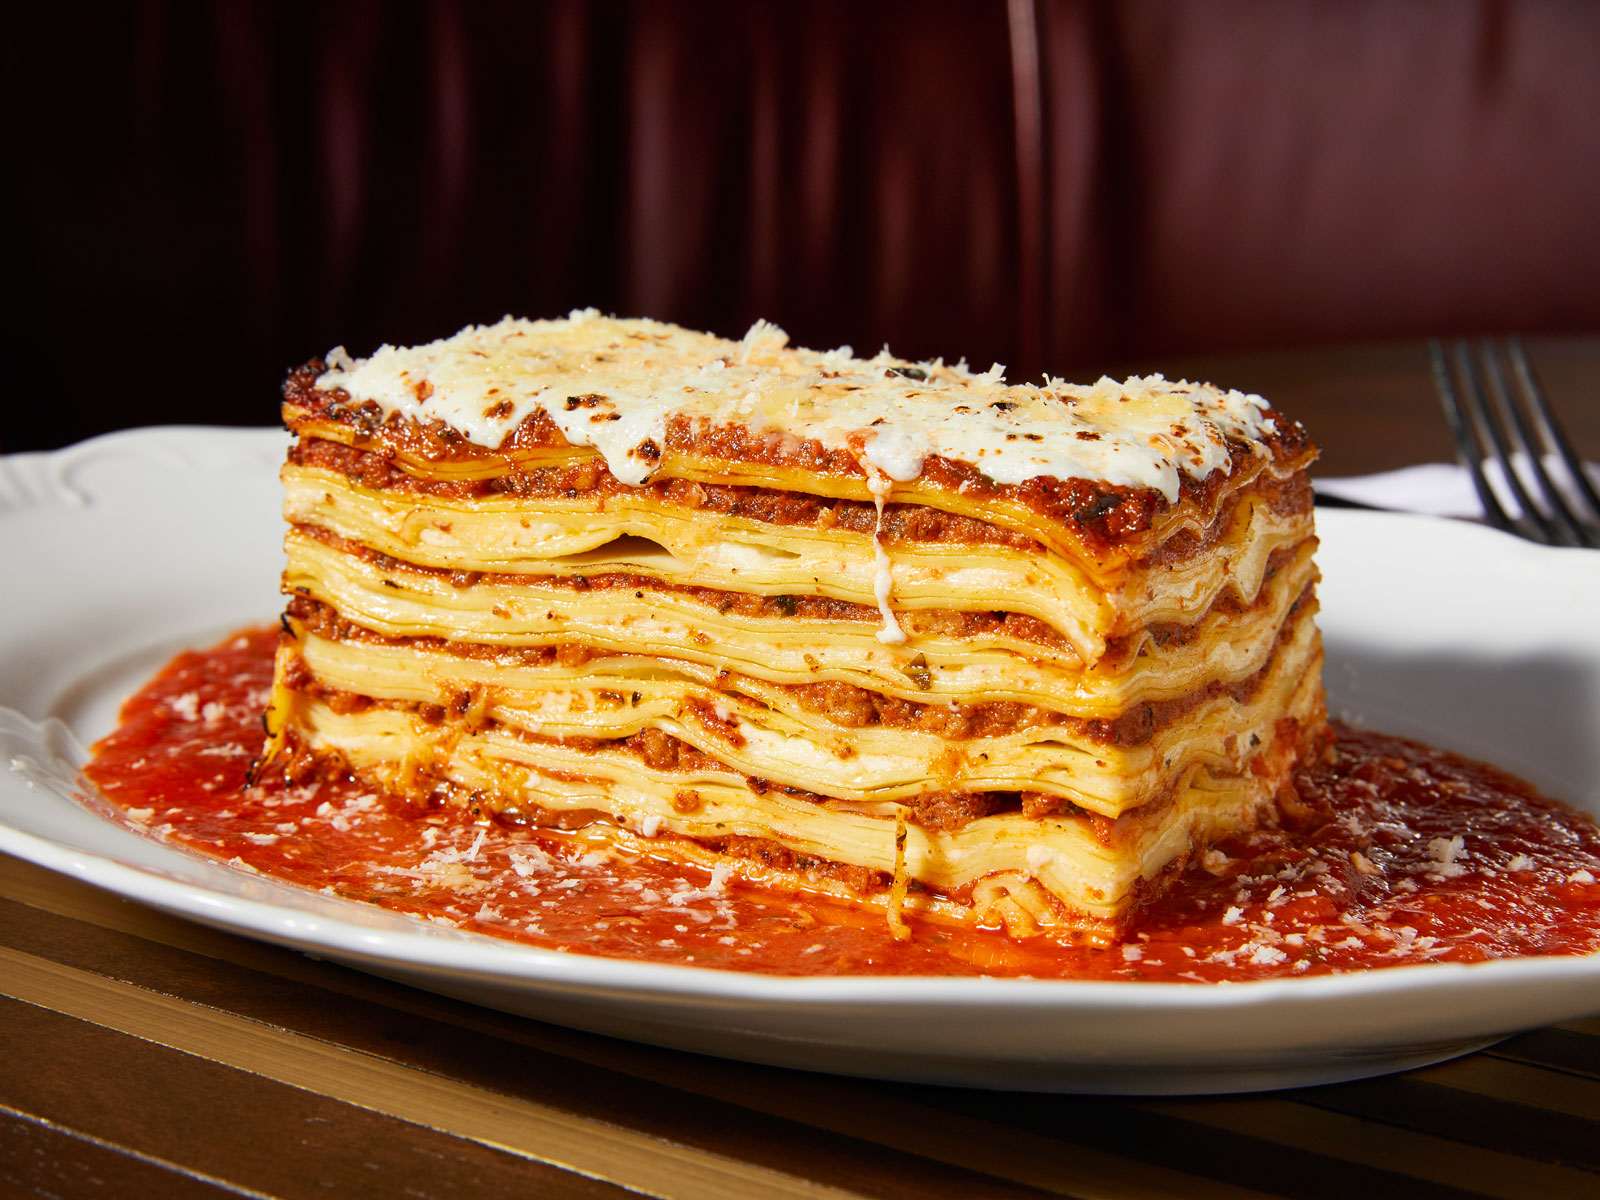 Michael Symon Shares His Mom's Tips for Making Perfect Lasagna